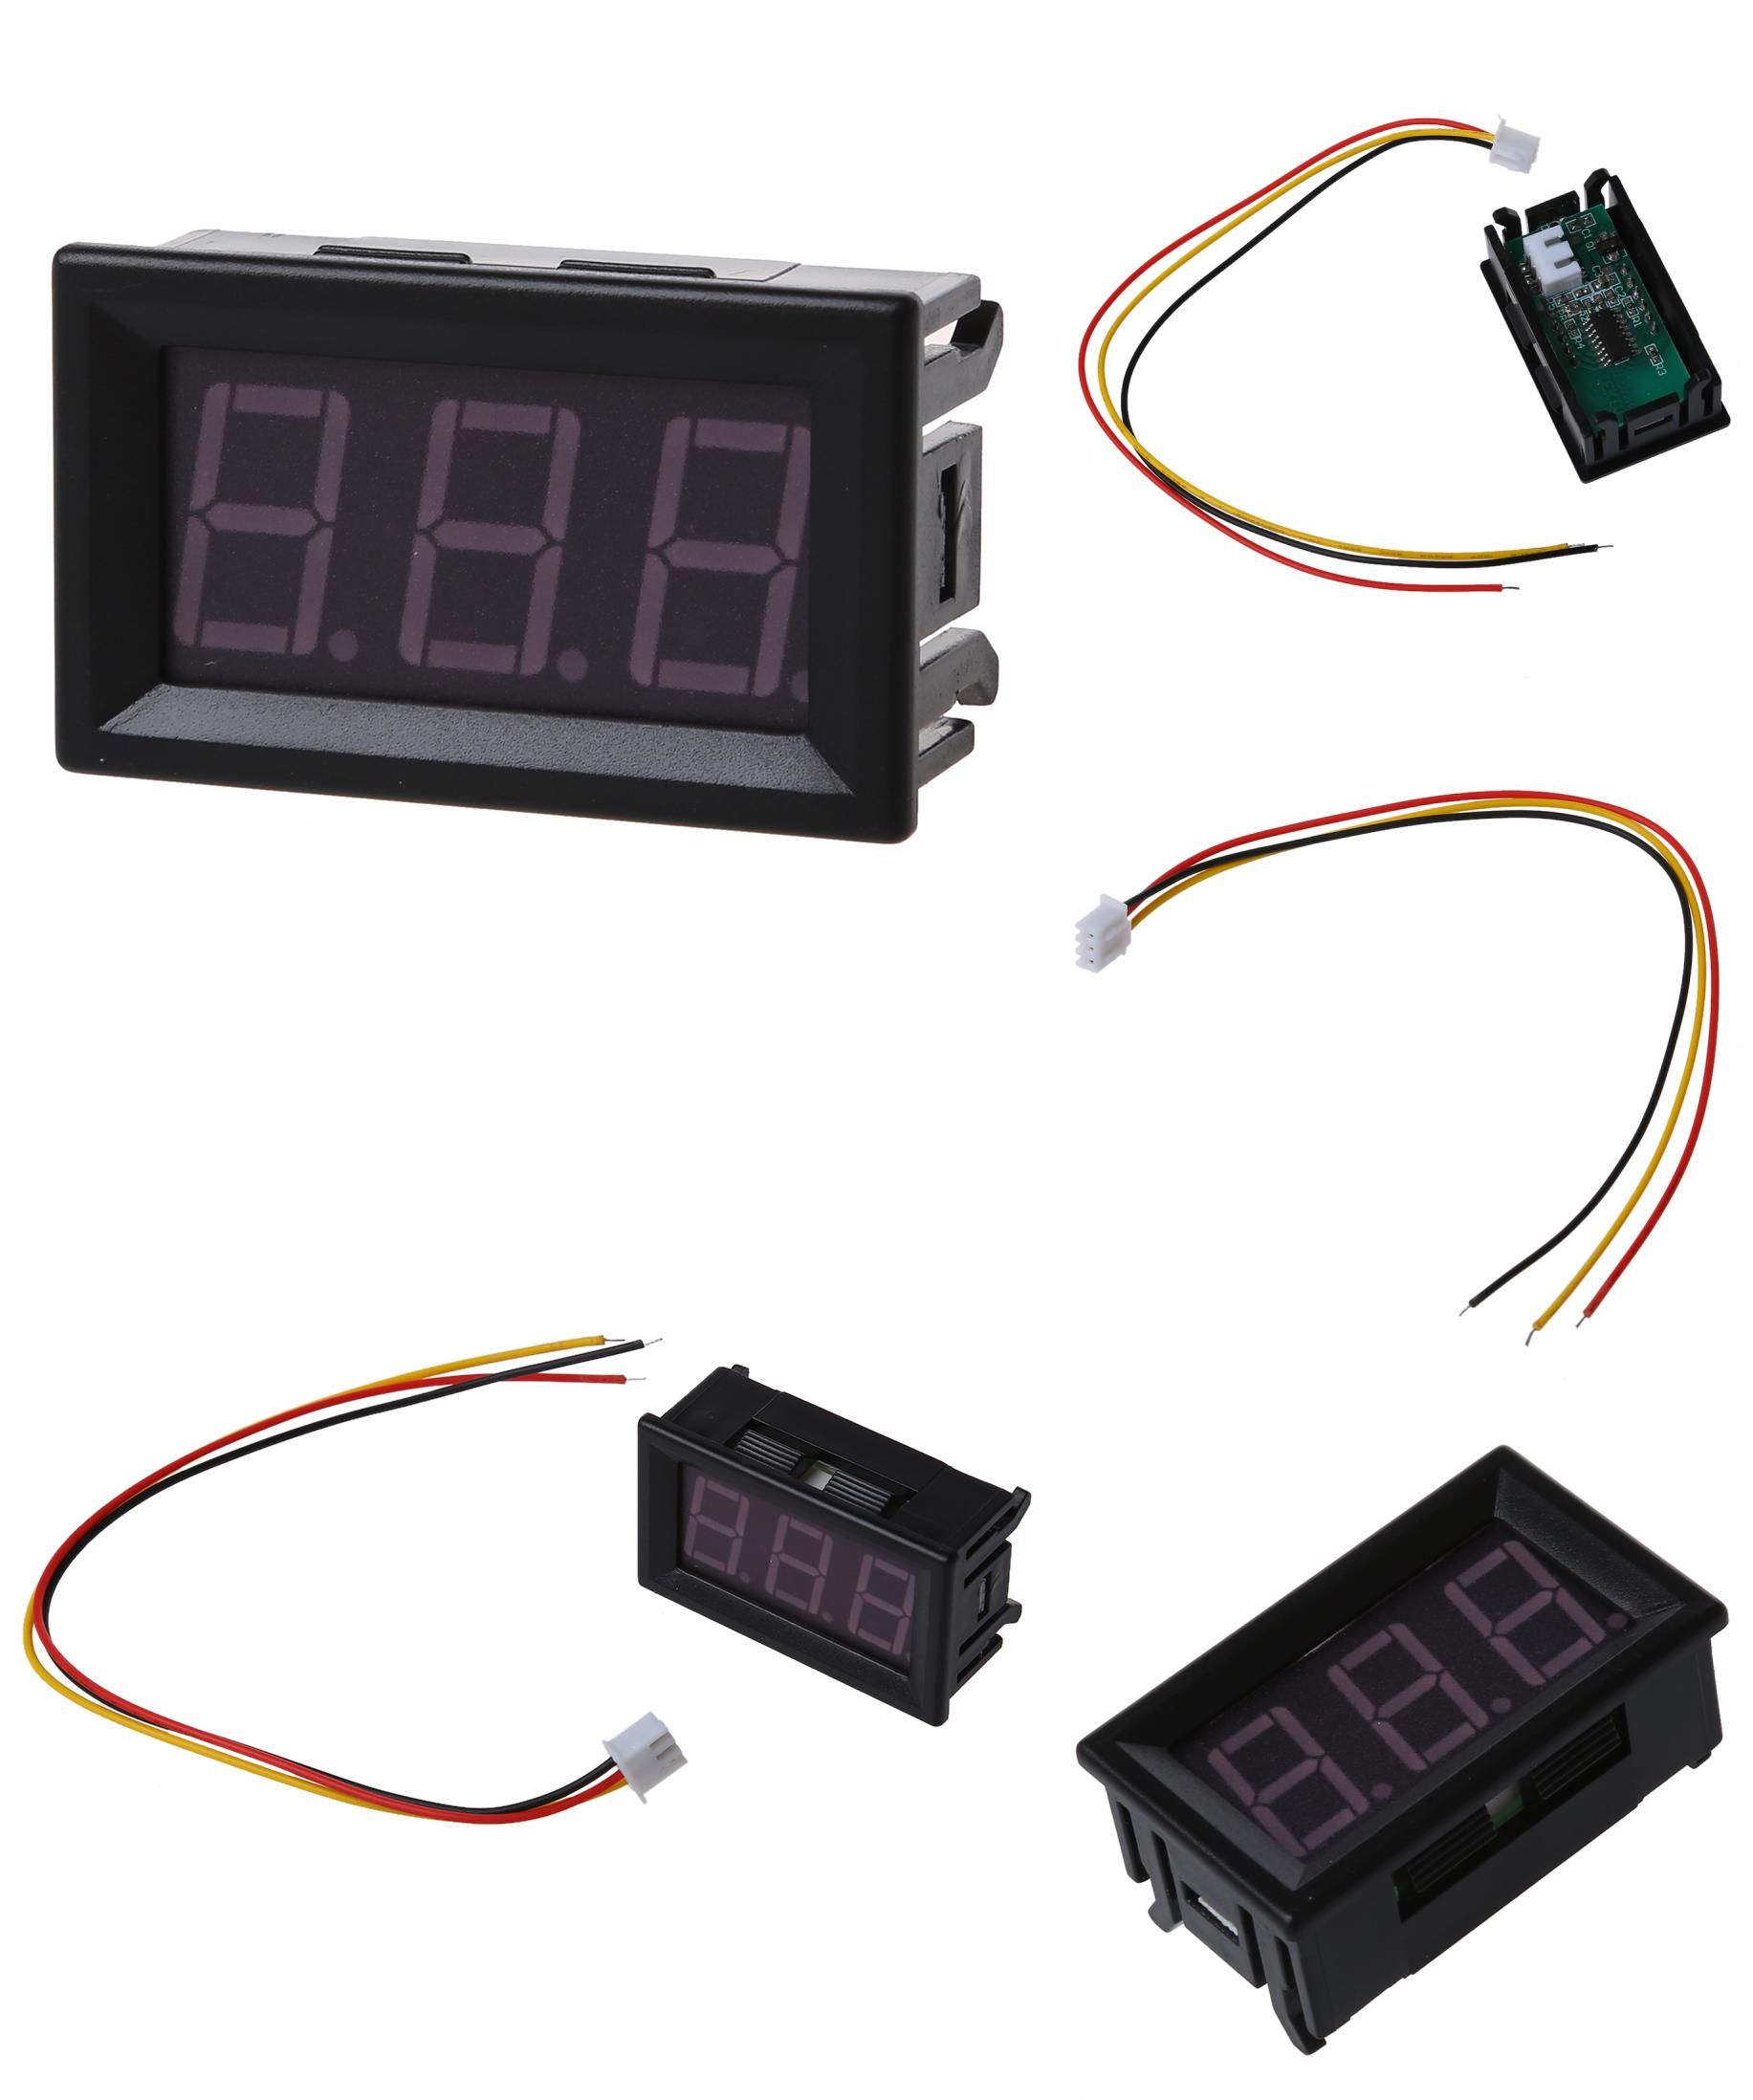 Visit To Buy Dc 0 999v 3 Wire Led Digital Display Panel Volt Meter Wiring Voltmeter In Car